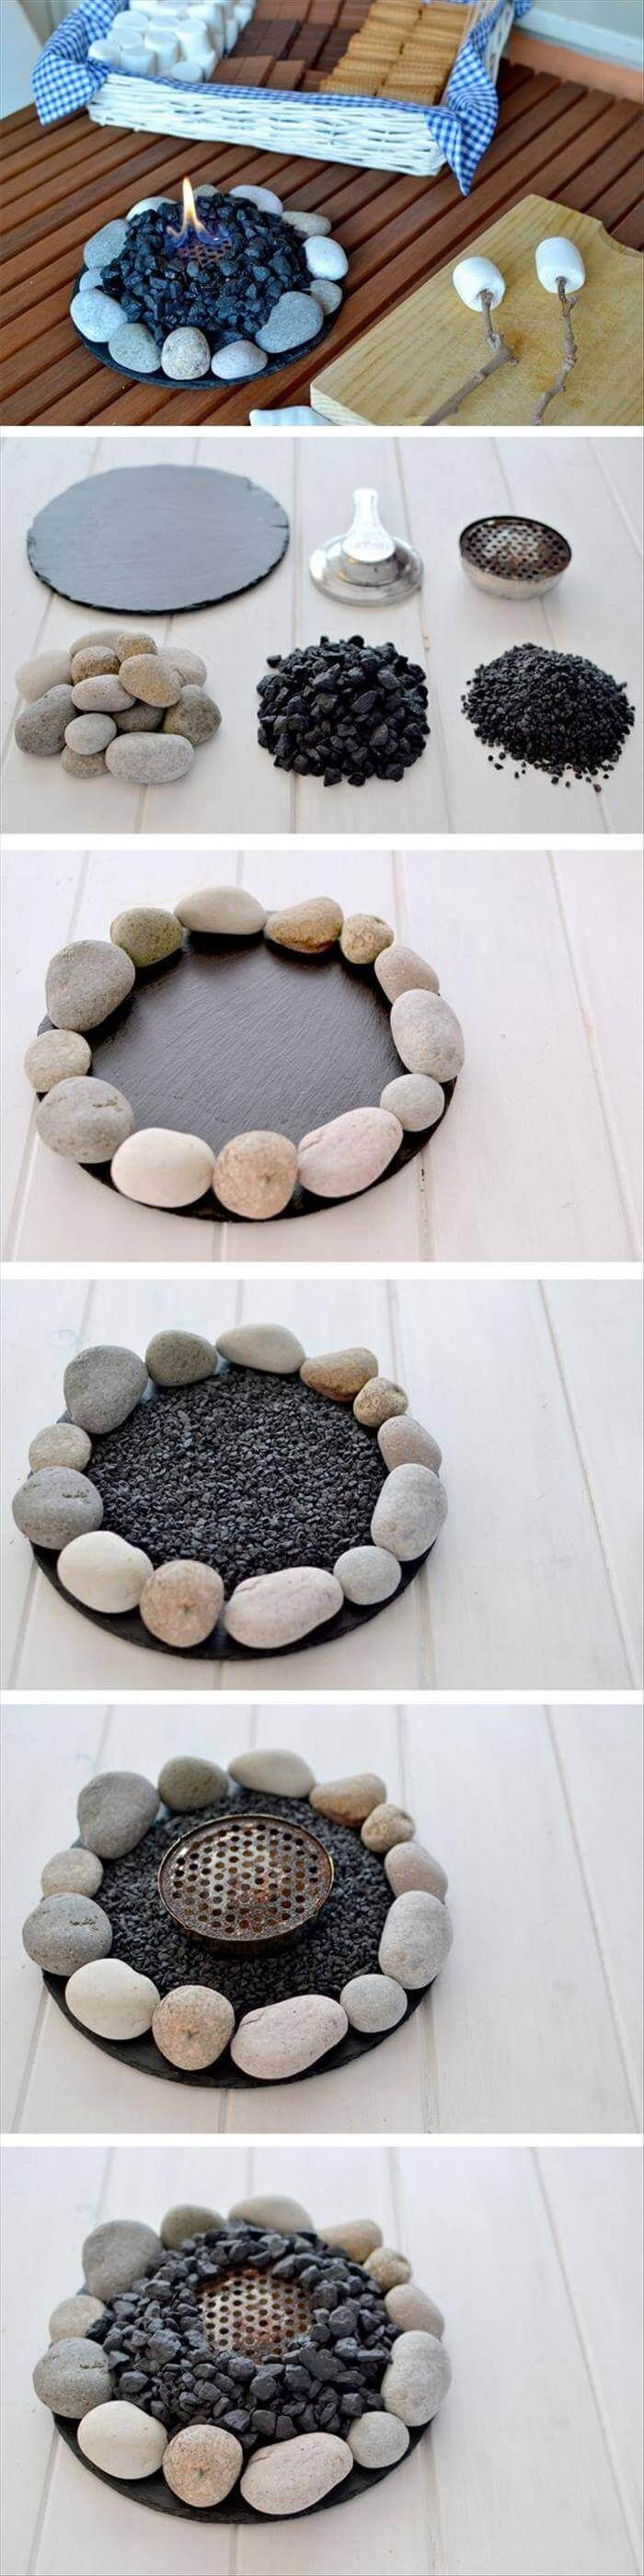 creative diy home decor ideas with pebbles and river rocks that